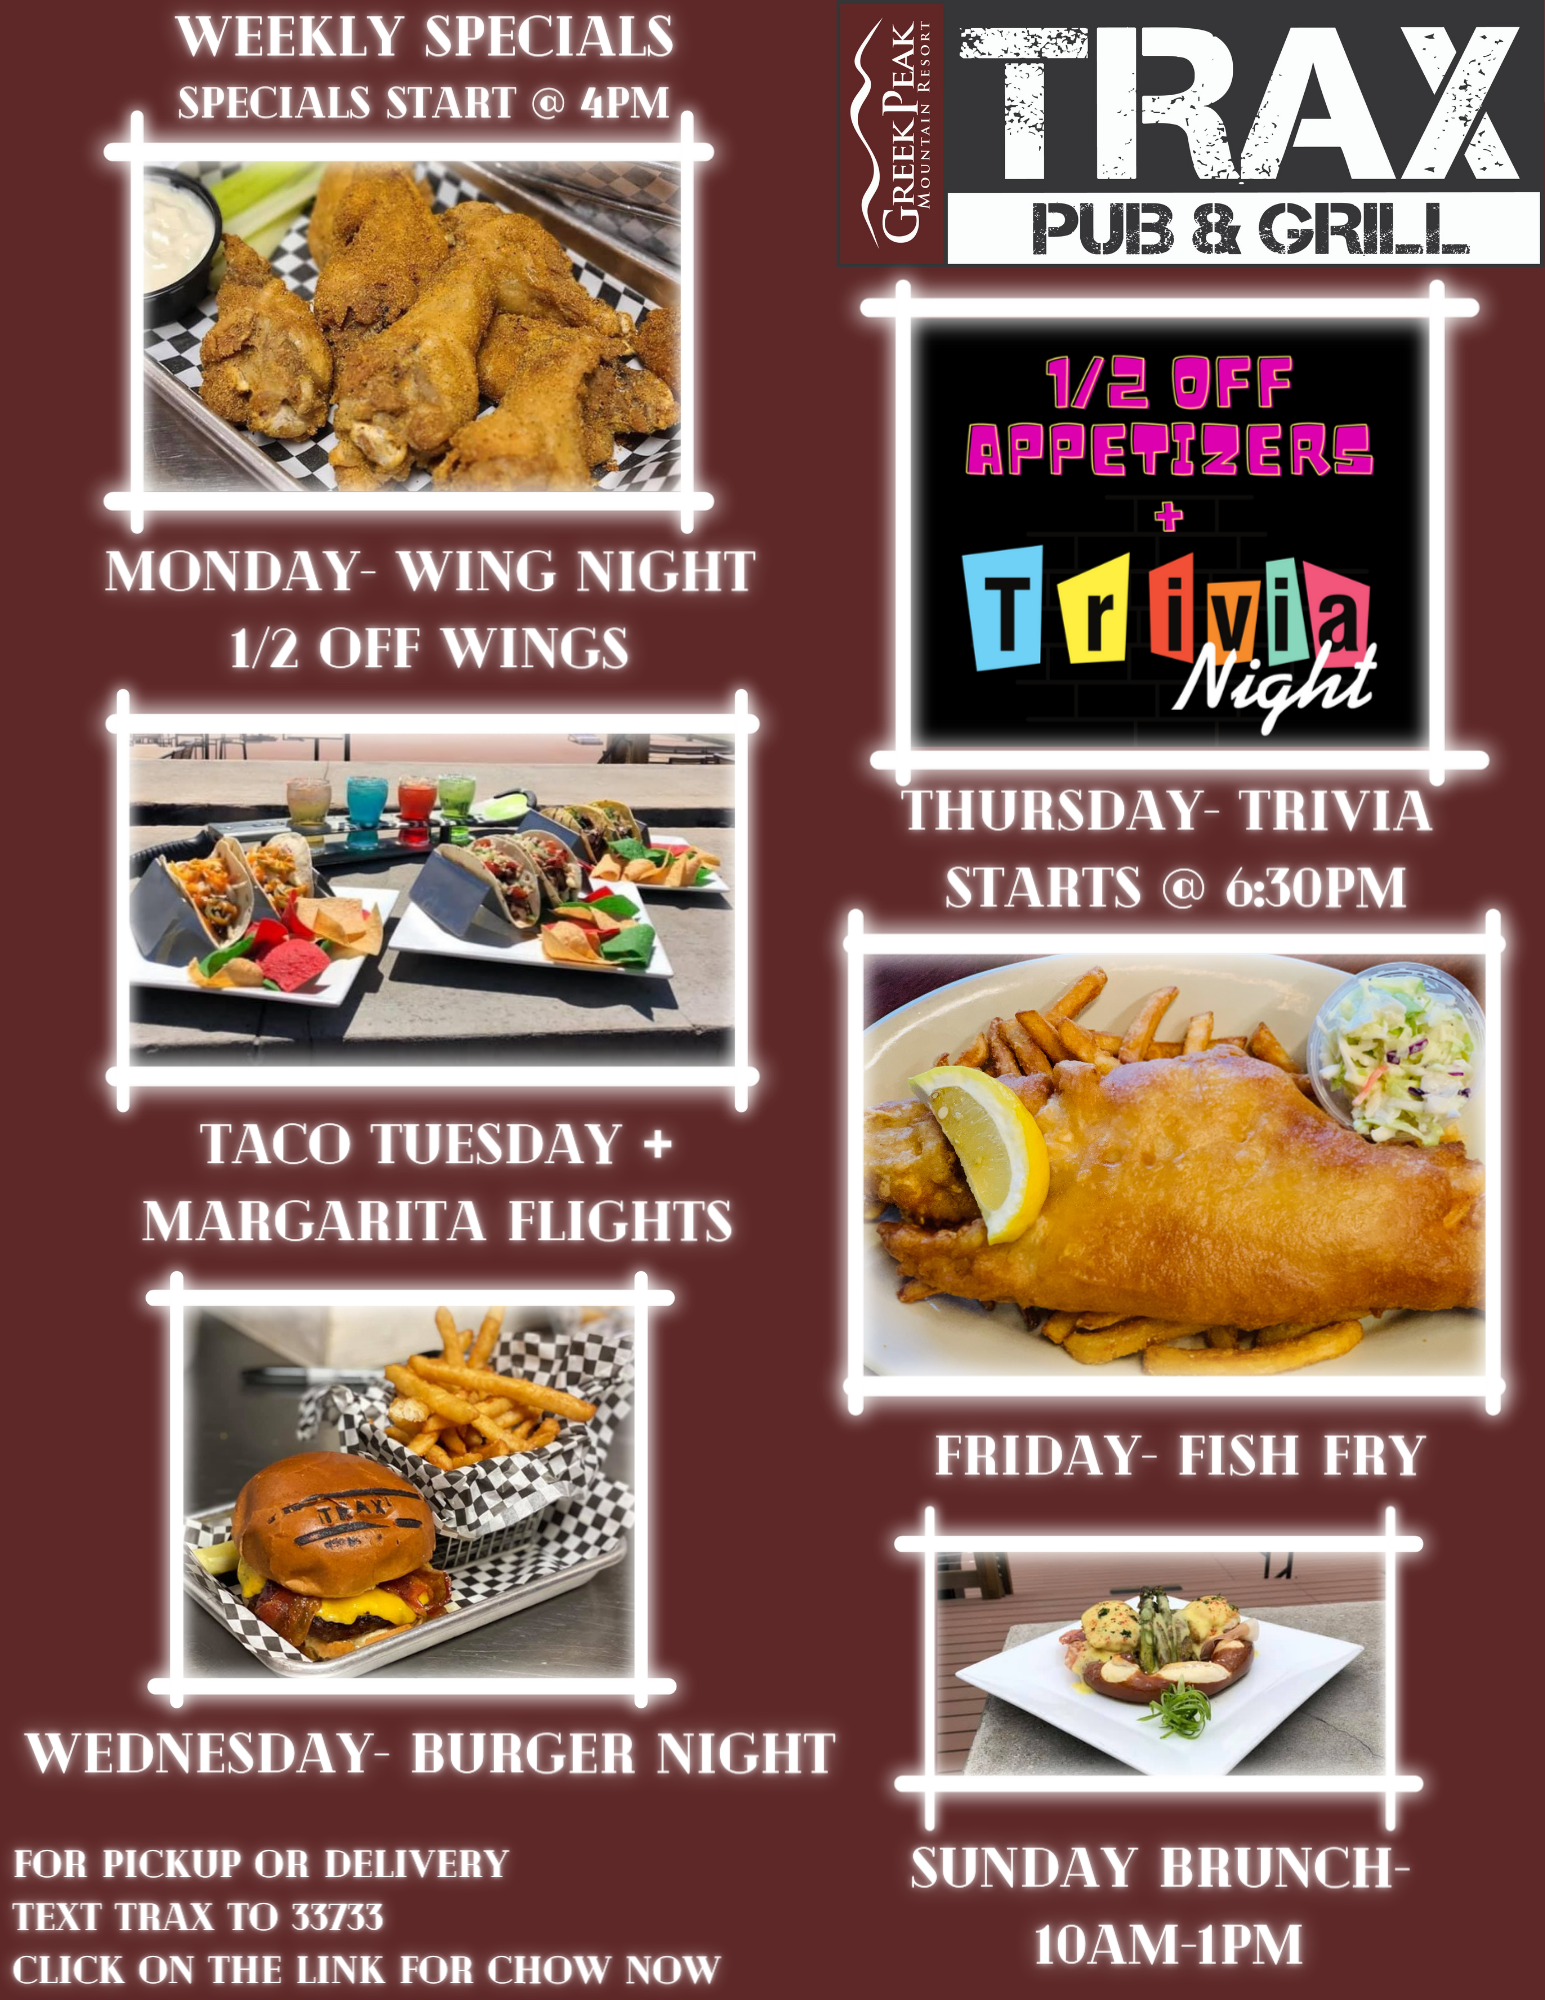 Trax specials flyer: Monday is wing night, Tuesday is Taco Tuesday and margarita flights for an upcharge, Wednesday is Burger Night, Thursday is Trivia night and 1/2 off appetizers and Friday is fish fry! Sunday is brunch from 10am-1pm.